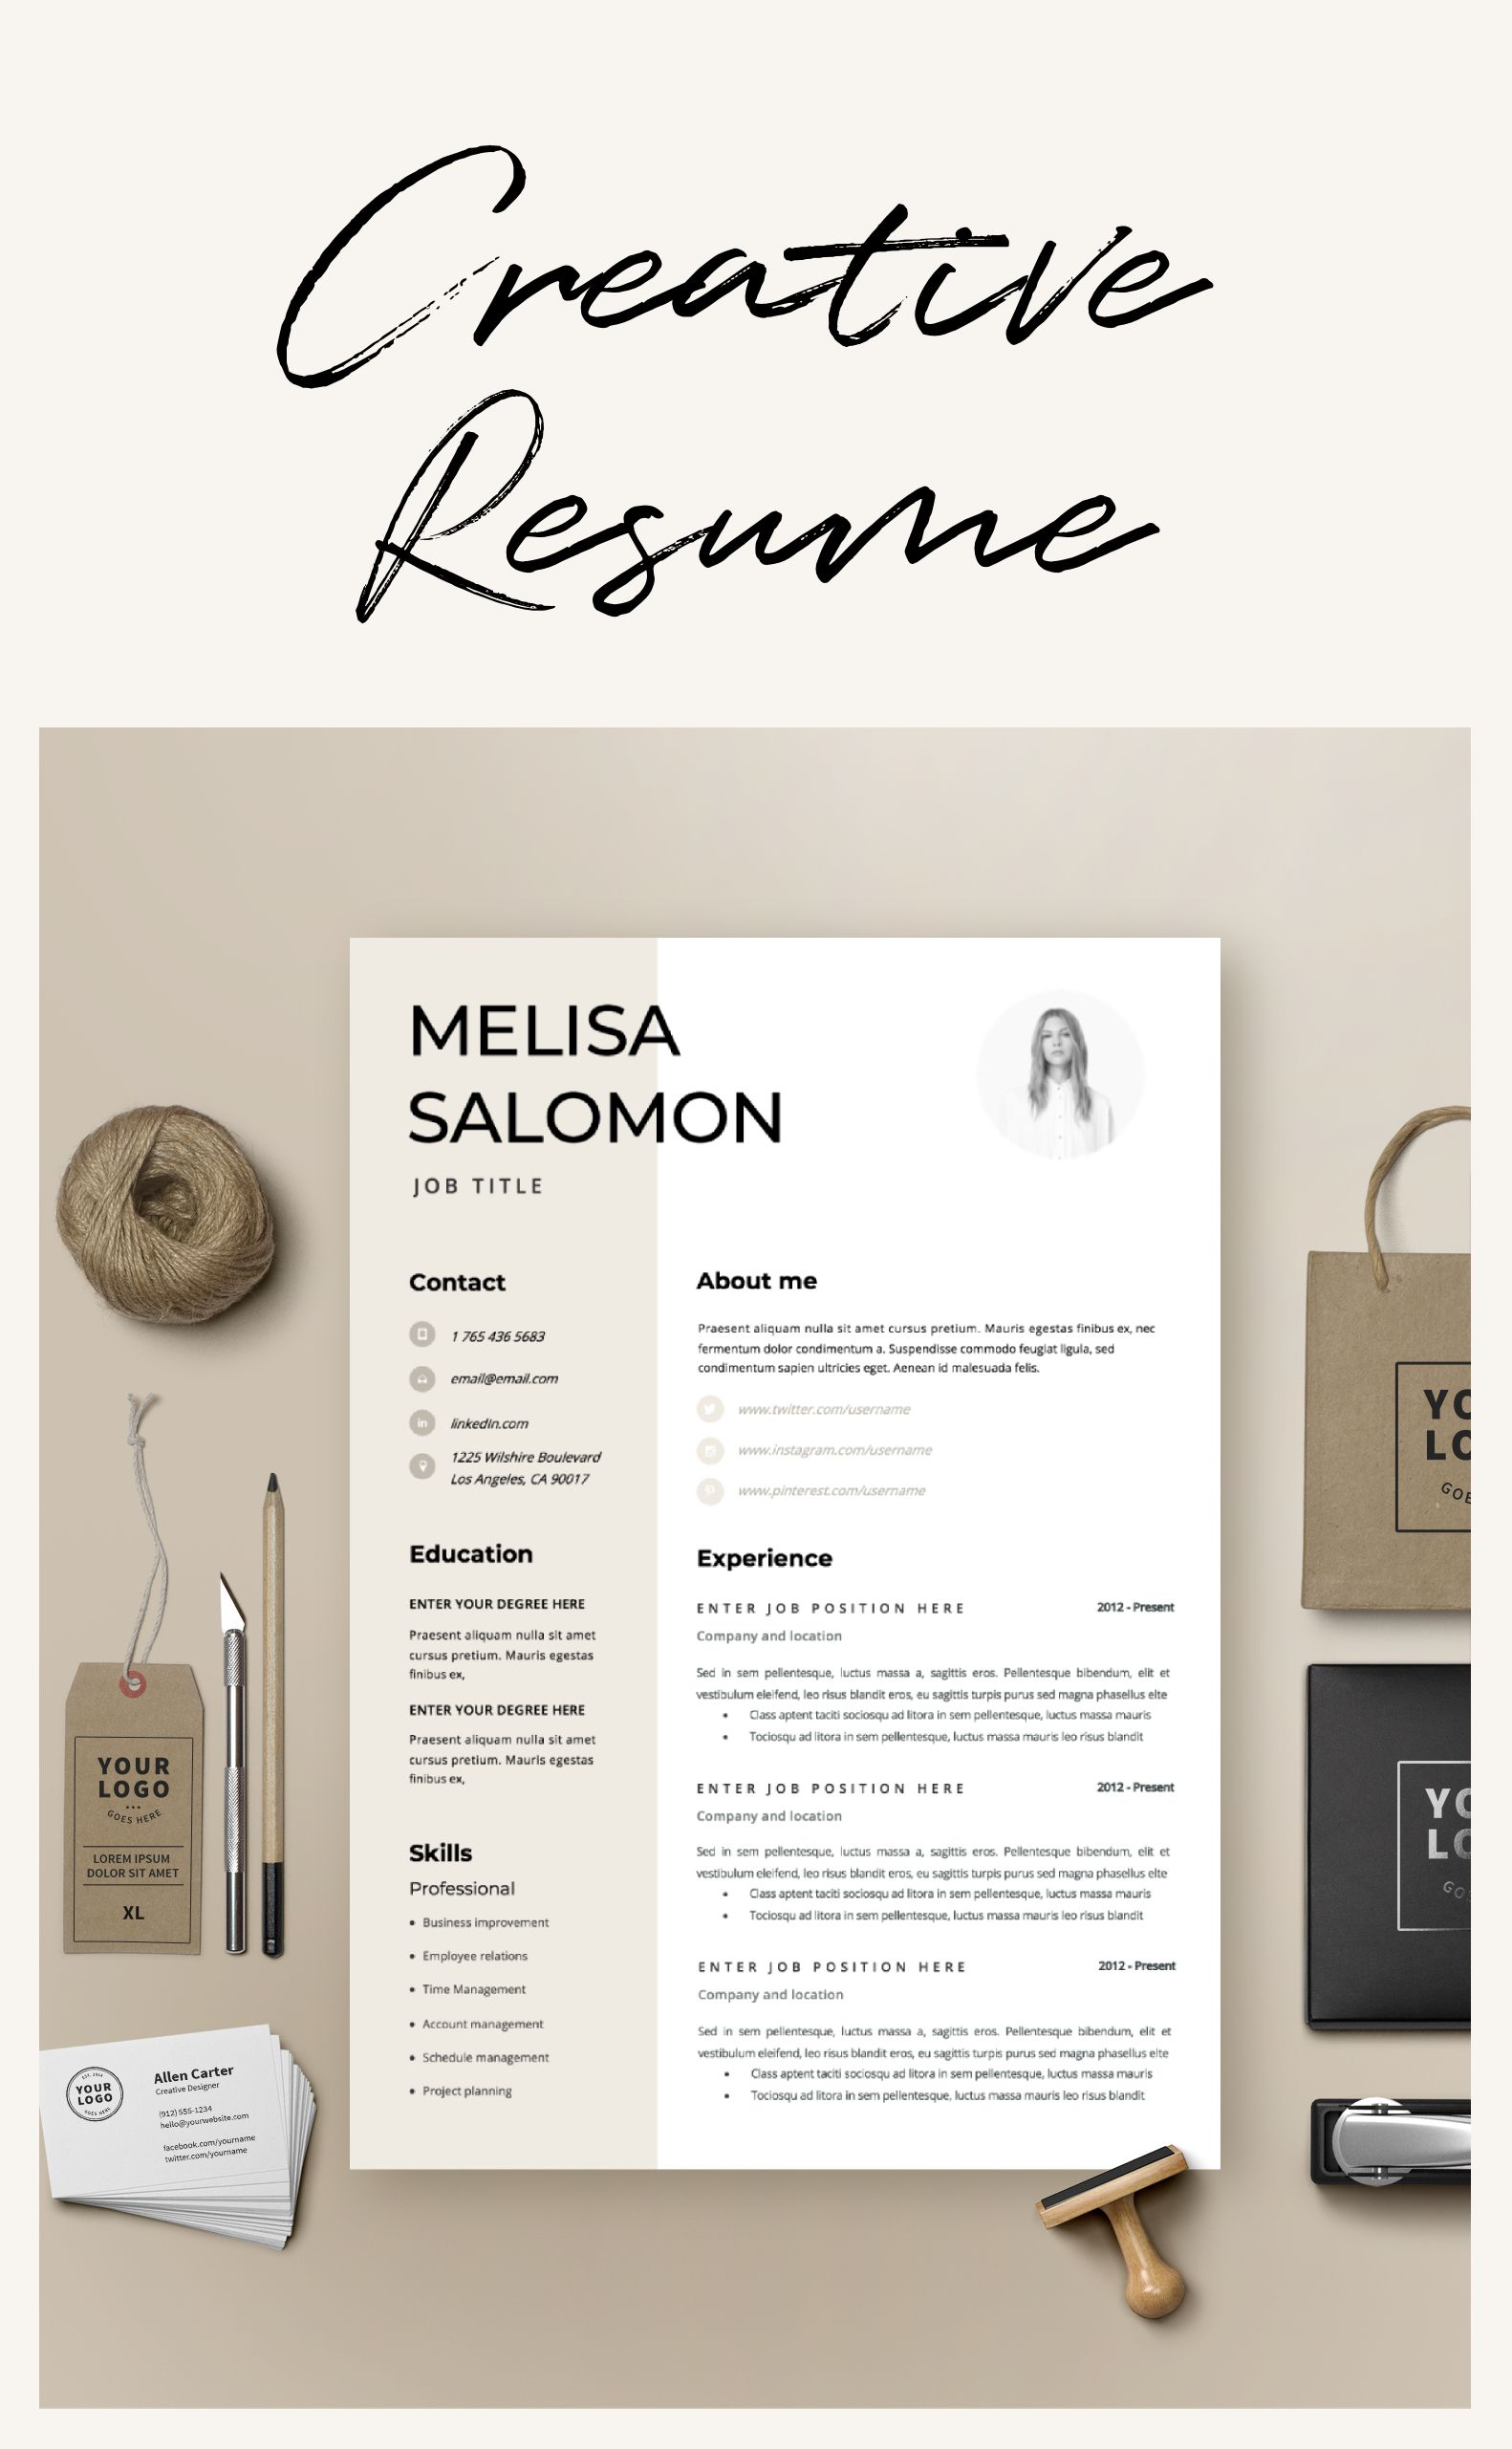 Resume Template Cv Template Resume Cv Design Teacher Etsy Resume Design Template Creative Resume Templates Resume Templates